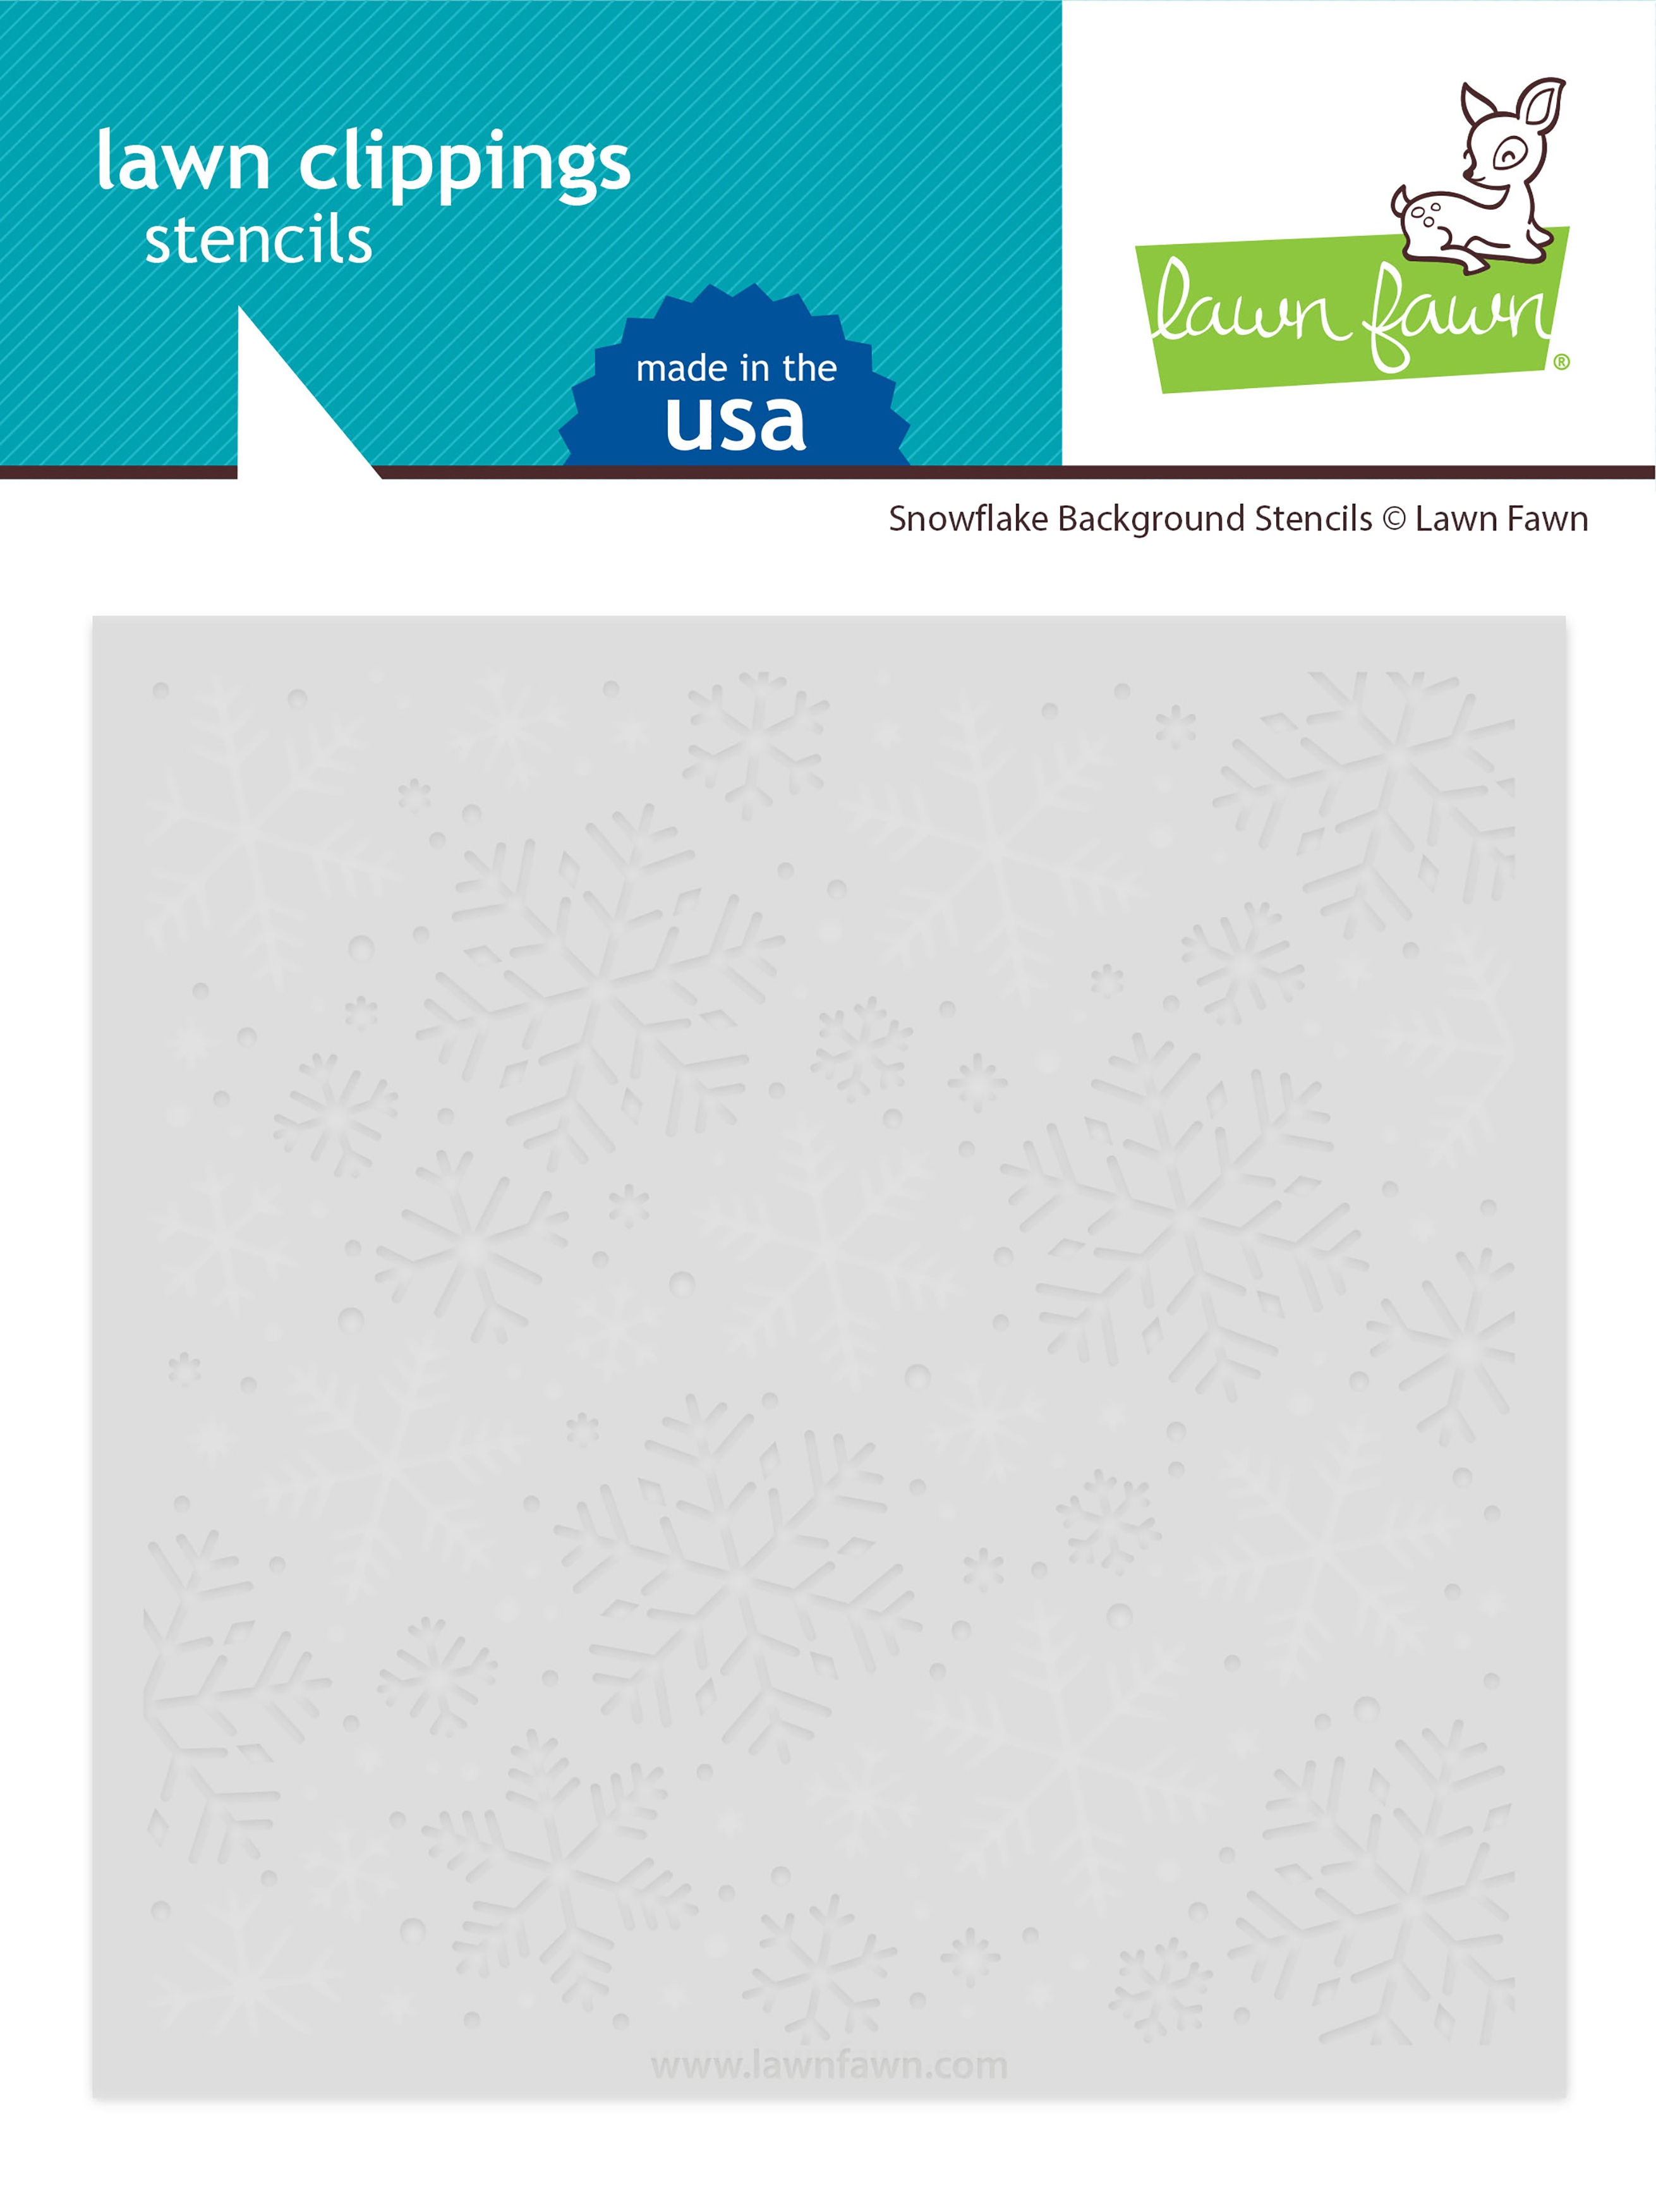 Lawn Clippings Stencils-Snowflake Background